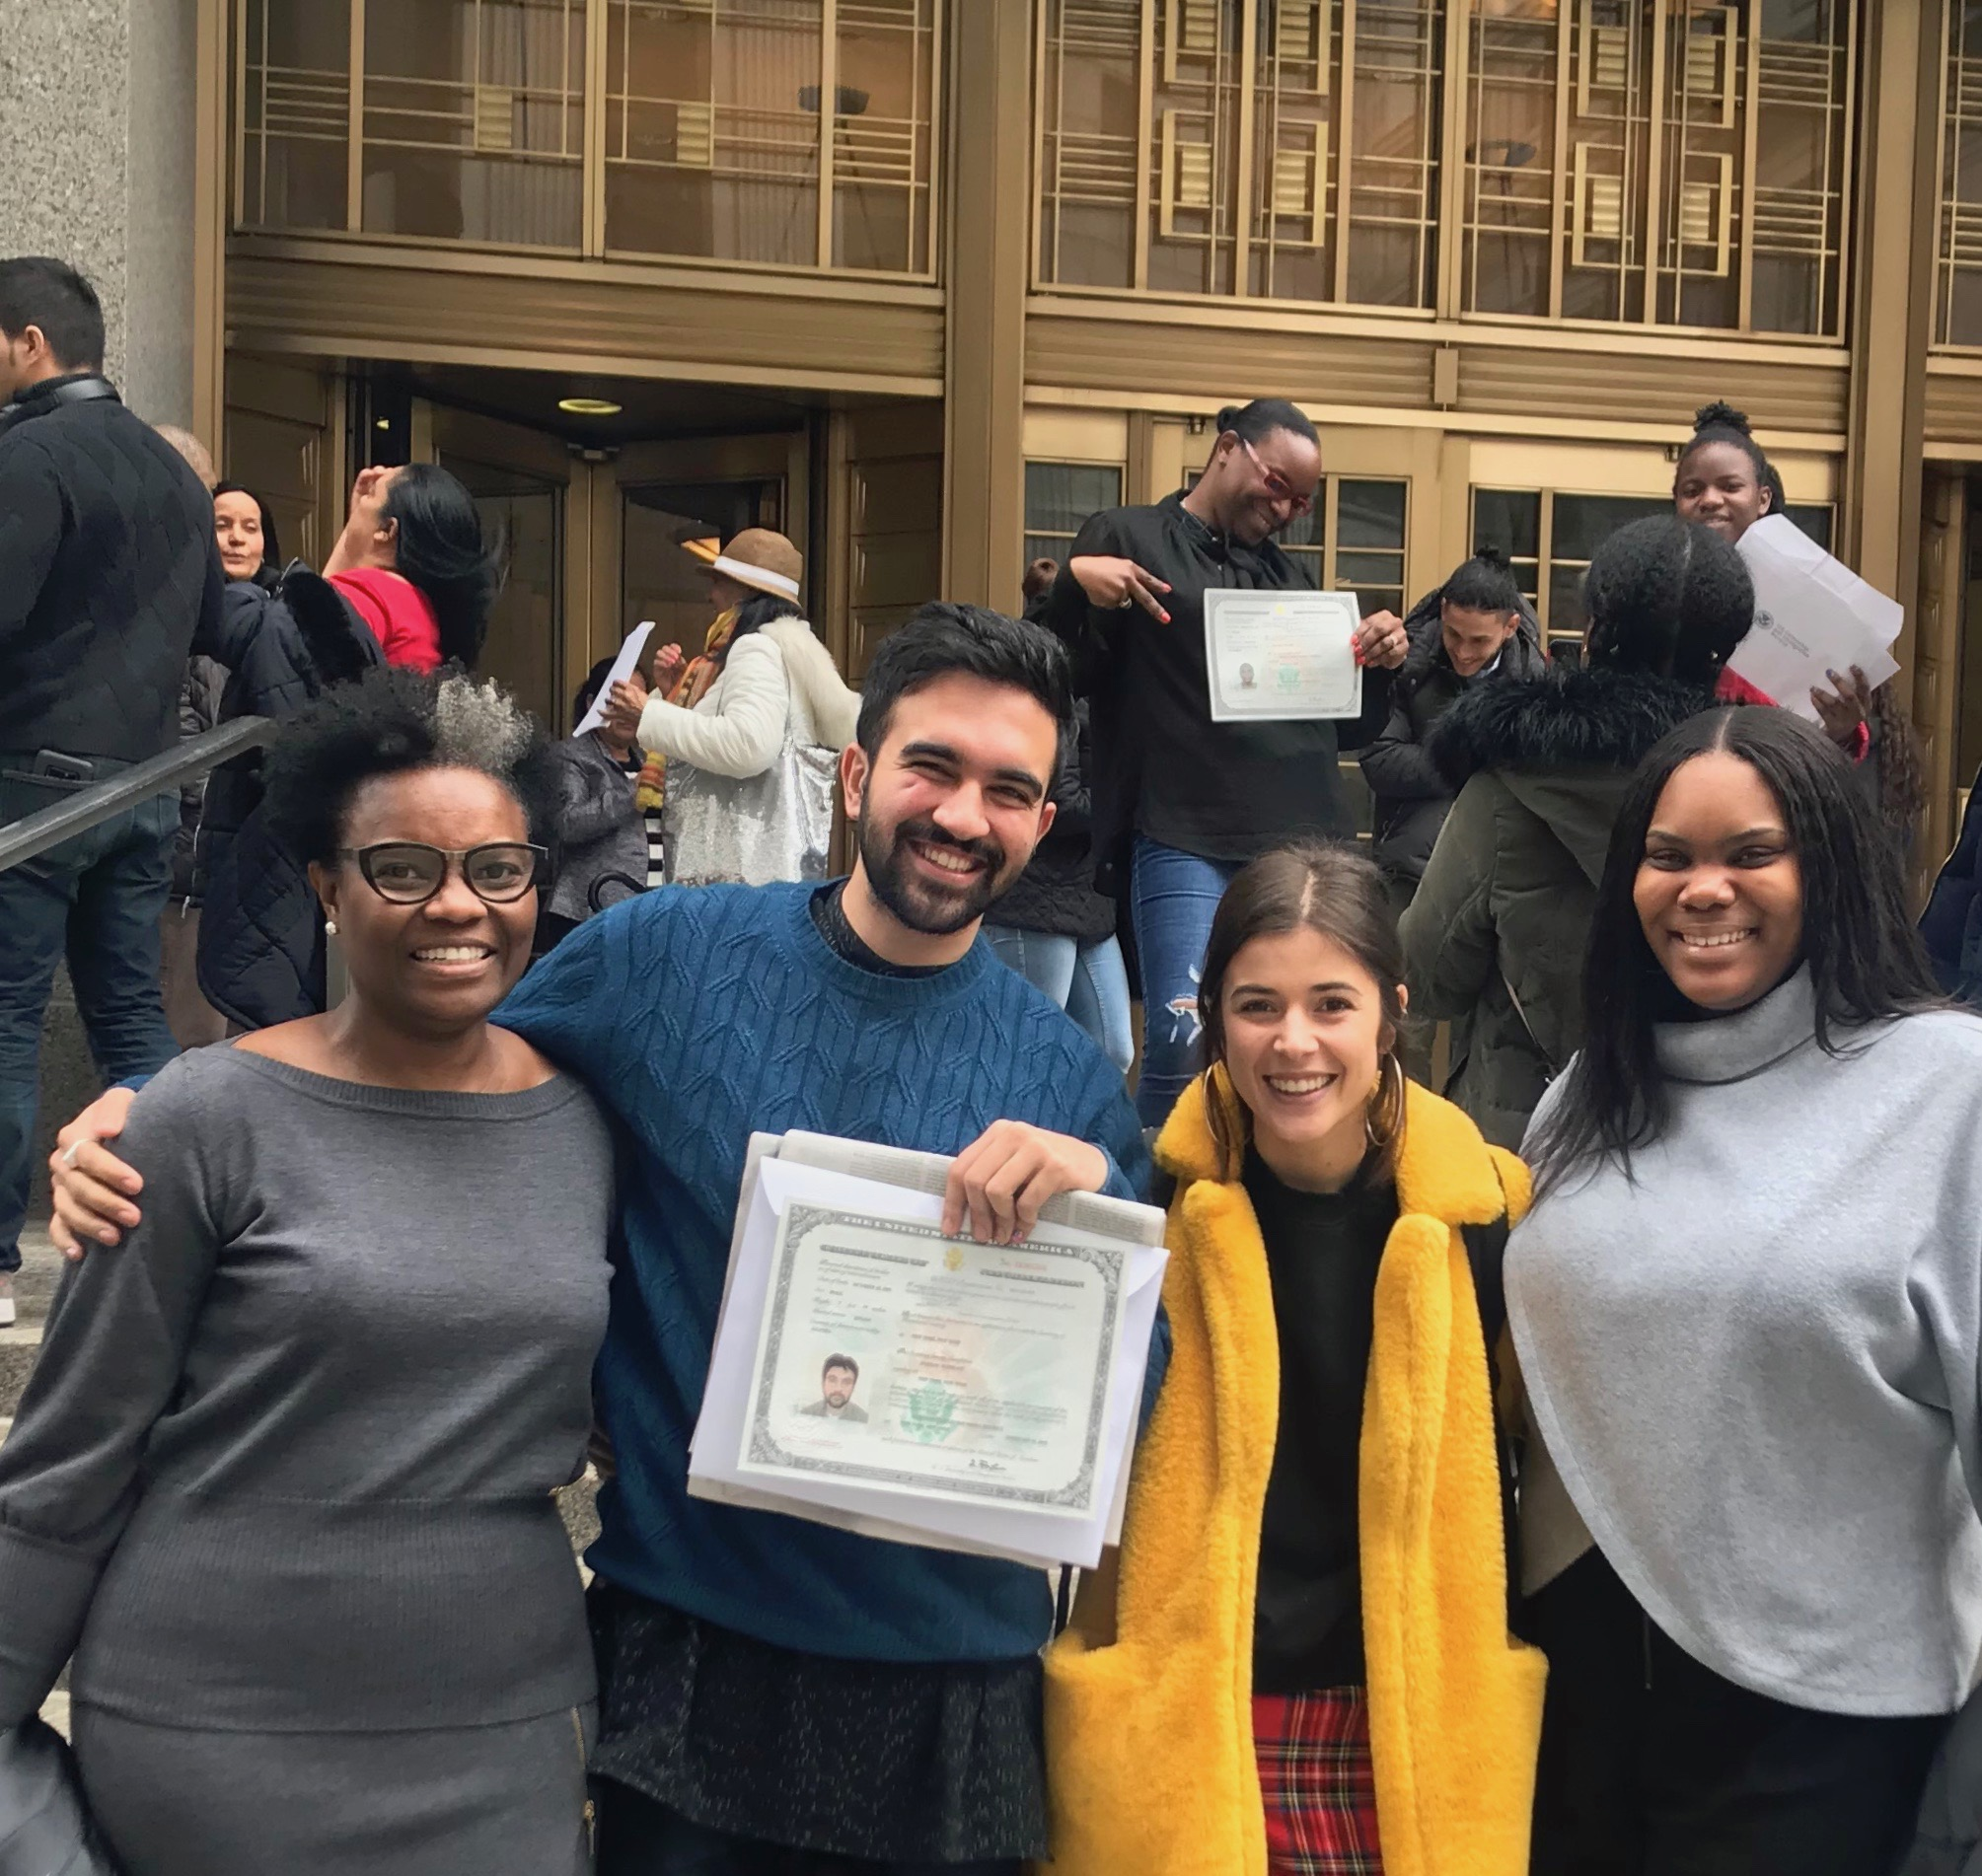 Image of Zohran celebrating reciving his citizenship with friends.